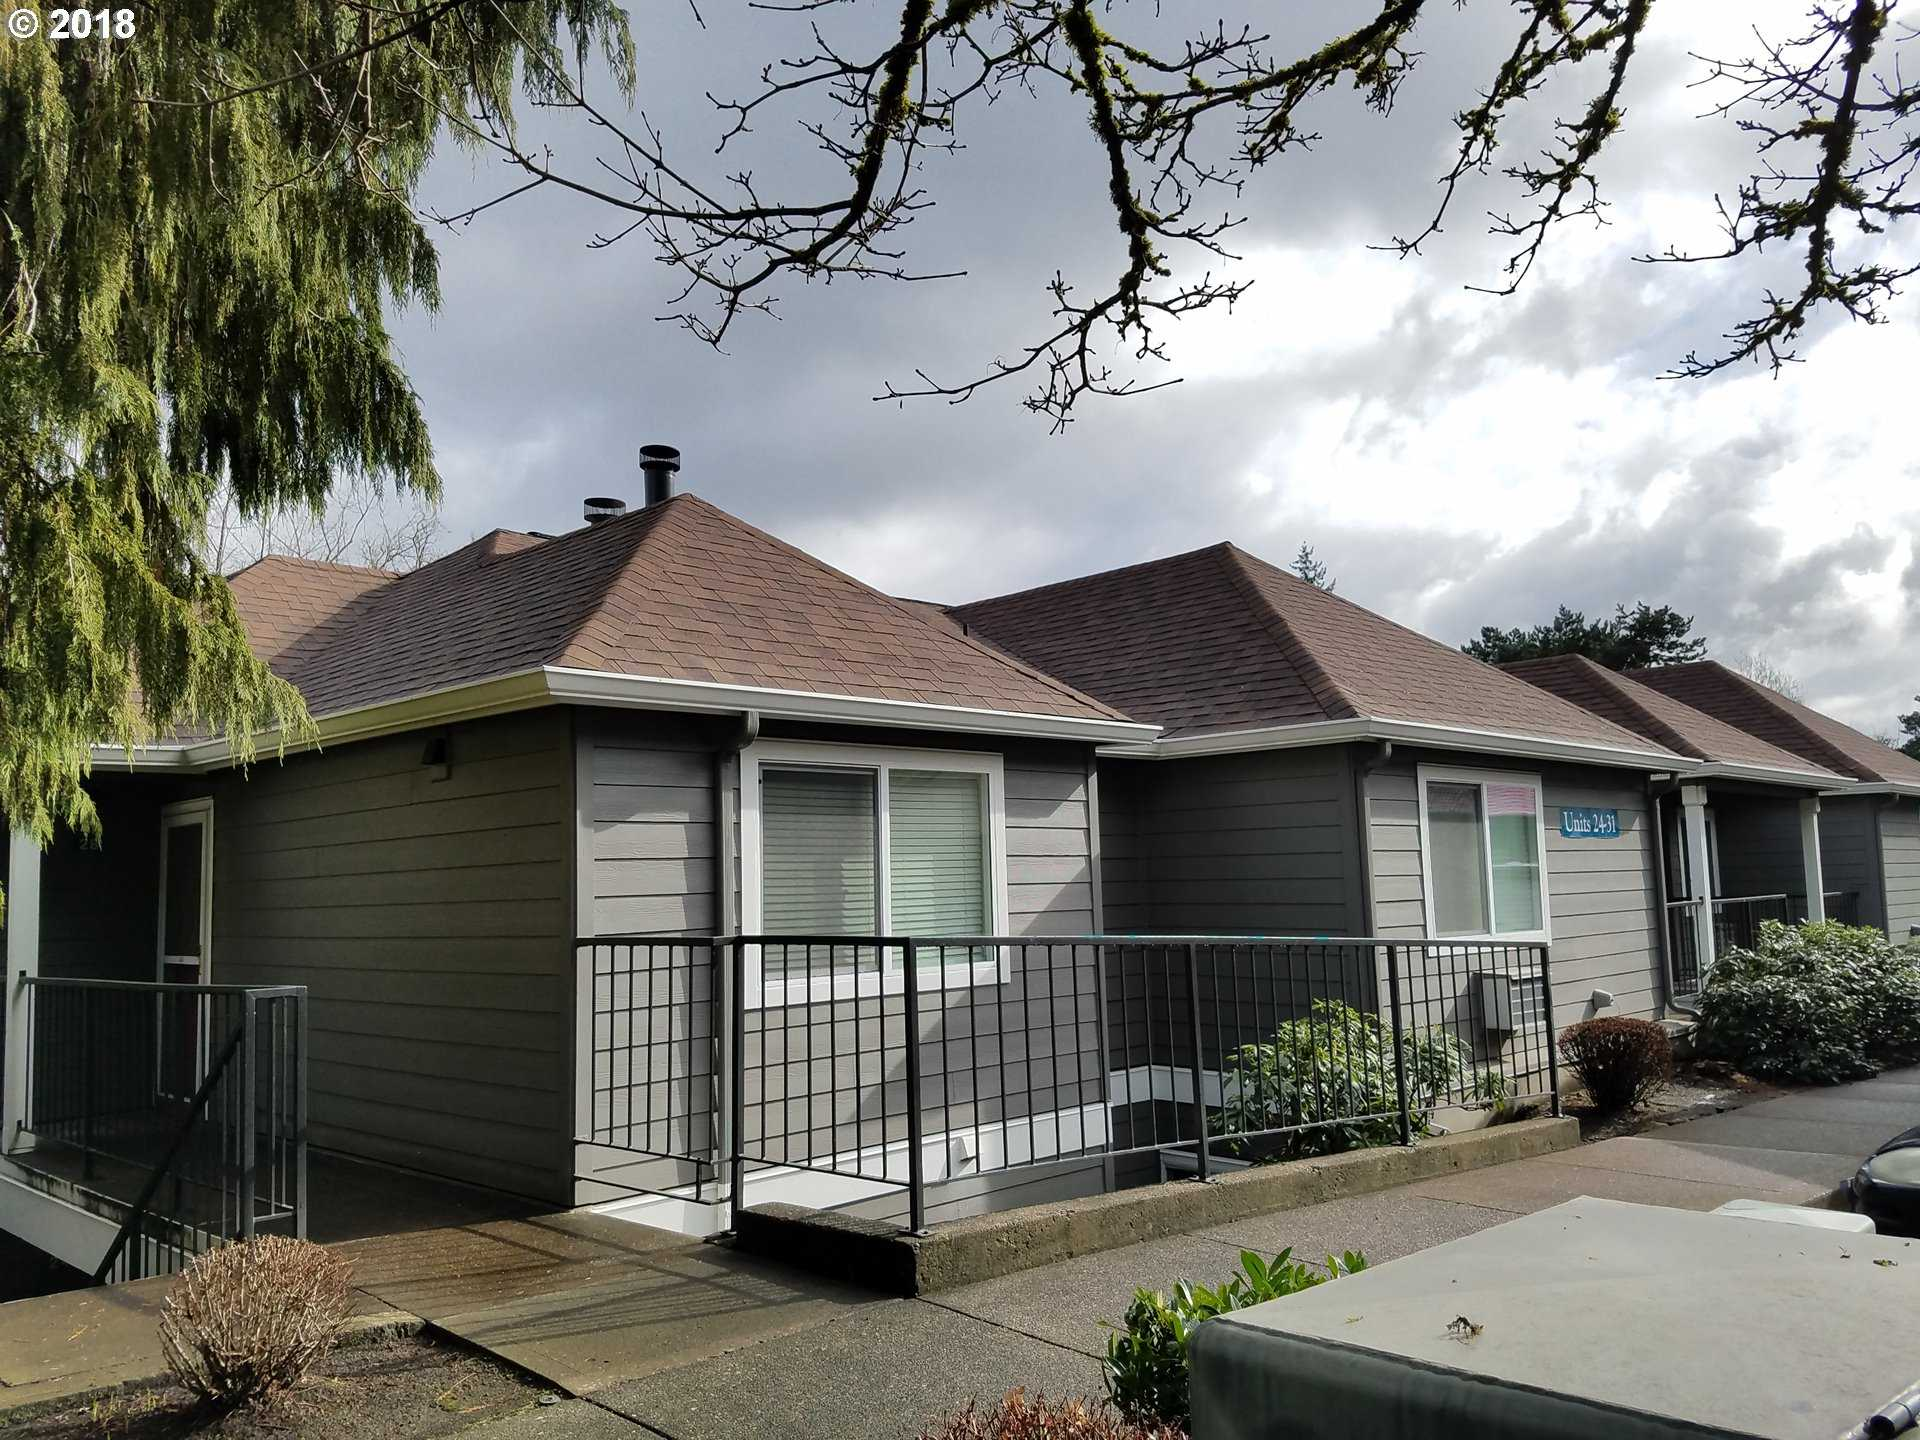 $164,900 - 1Br/1Ba -  for Sale in West Linn